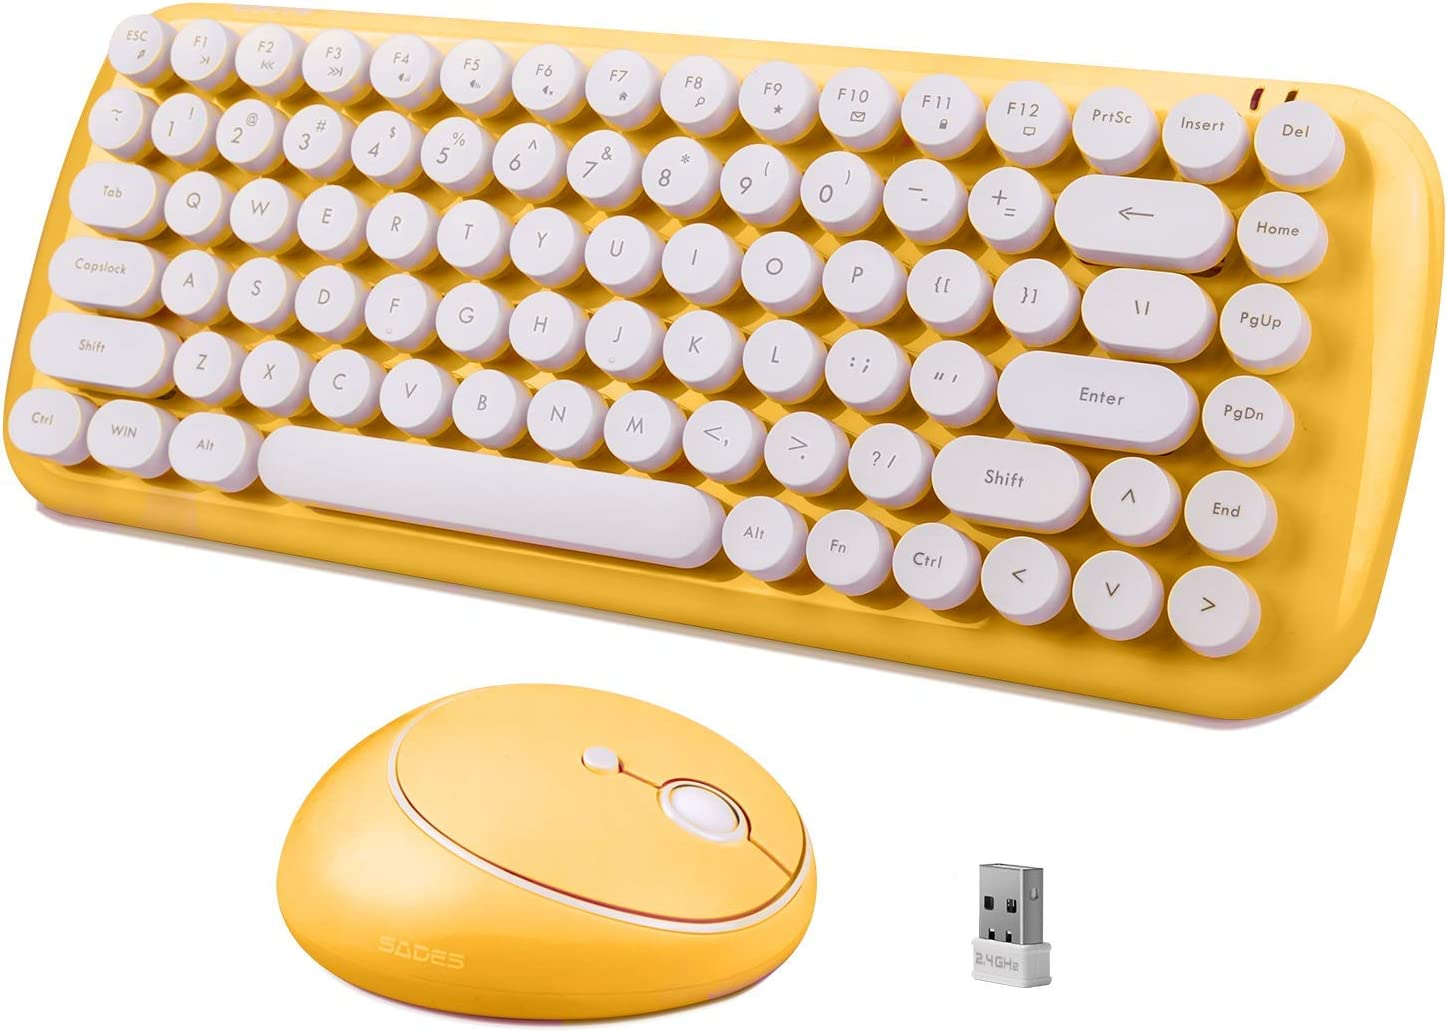 Wireless Keyboard Mouse Combo, 2.4GHz Office Home Mini Wireless Cute Gaming Keyboard Yellow with 84 Retro Keycaps, and Optical Wireless Gaming Mouse with 3 Adjustable DPI for Desktop Computer PC Mac